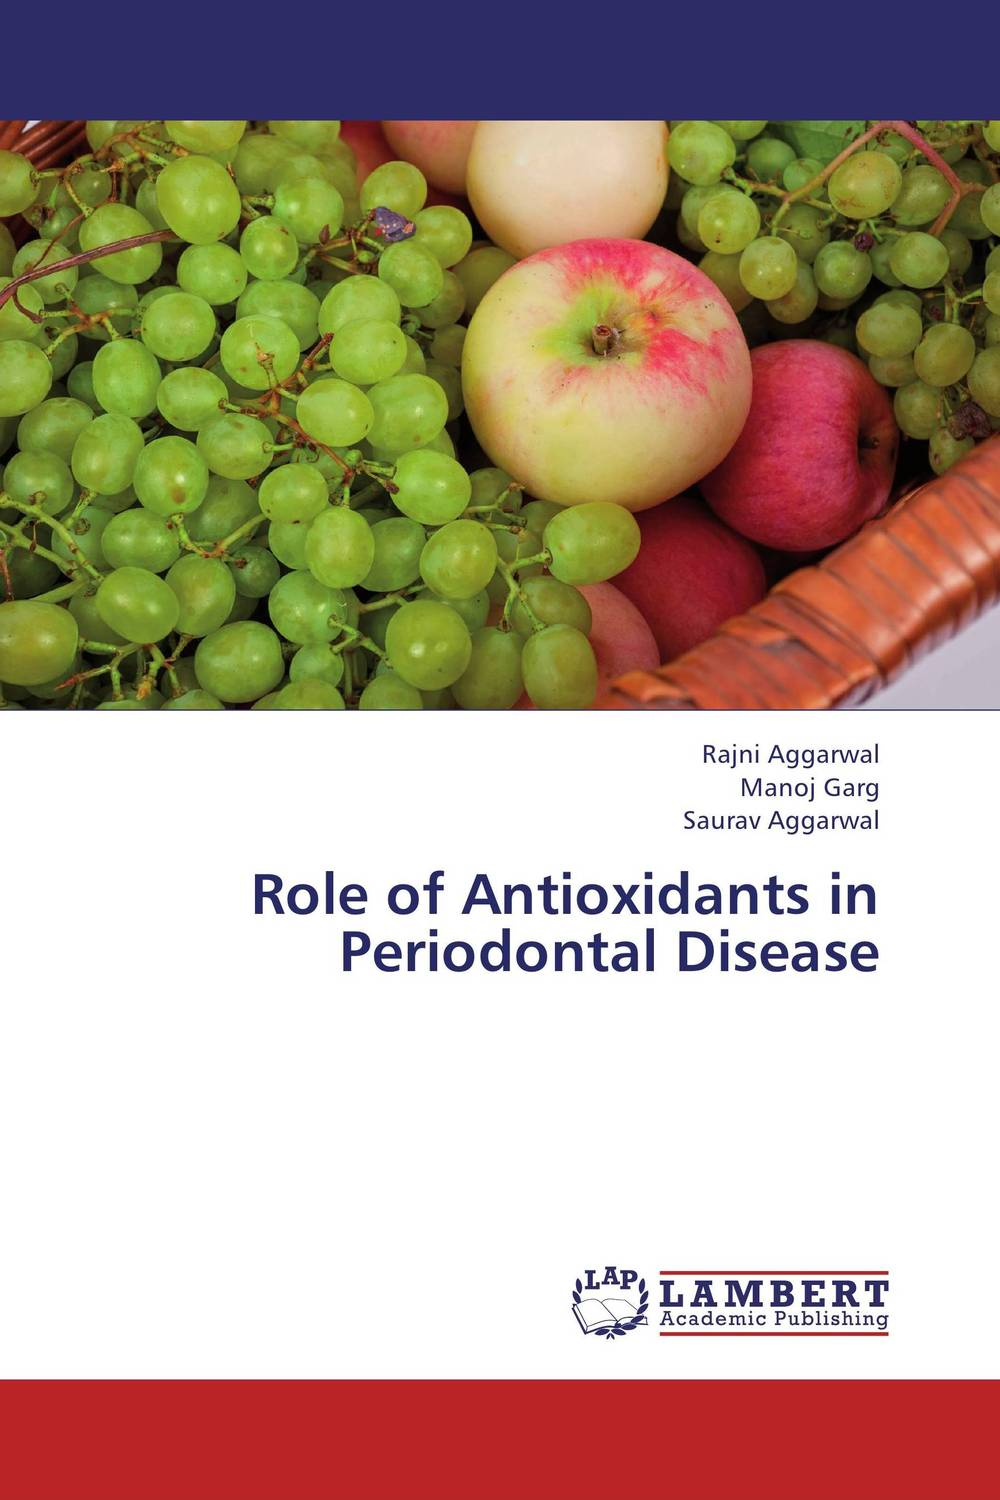 Role of Antioxidants in Periodontal Disease oxidative stability of meat products and the role of antioxidants